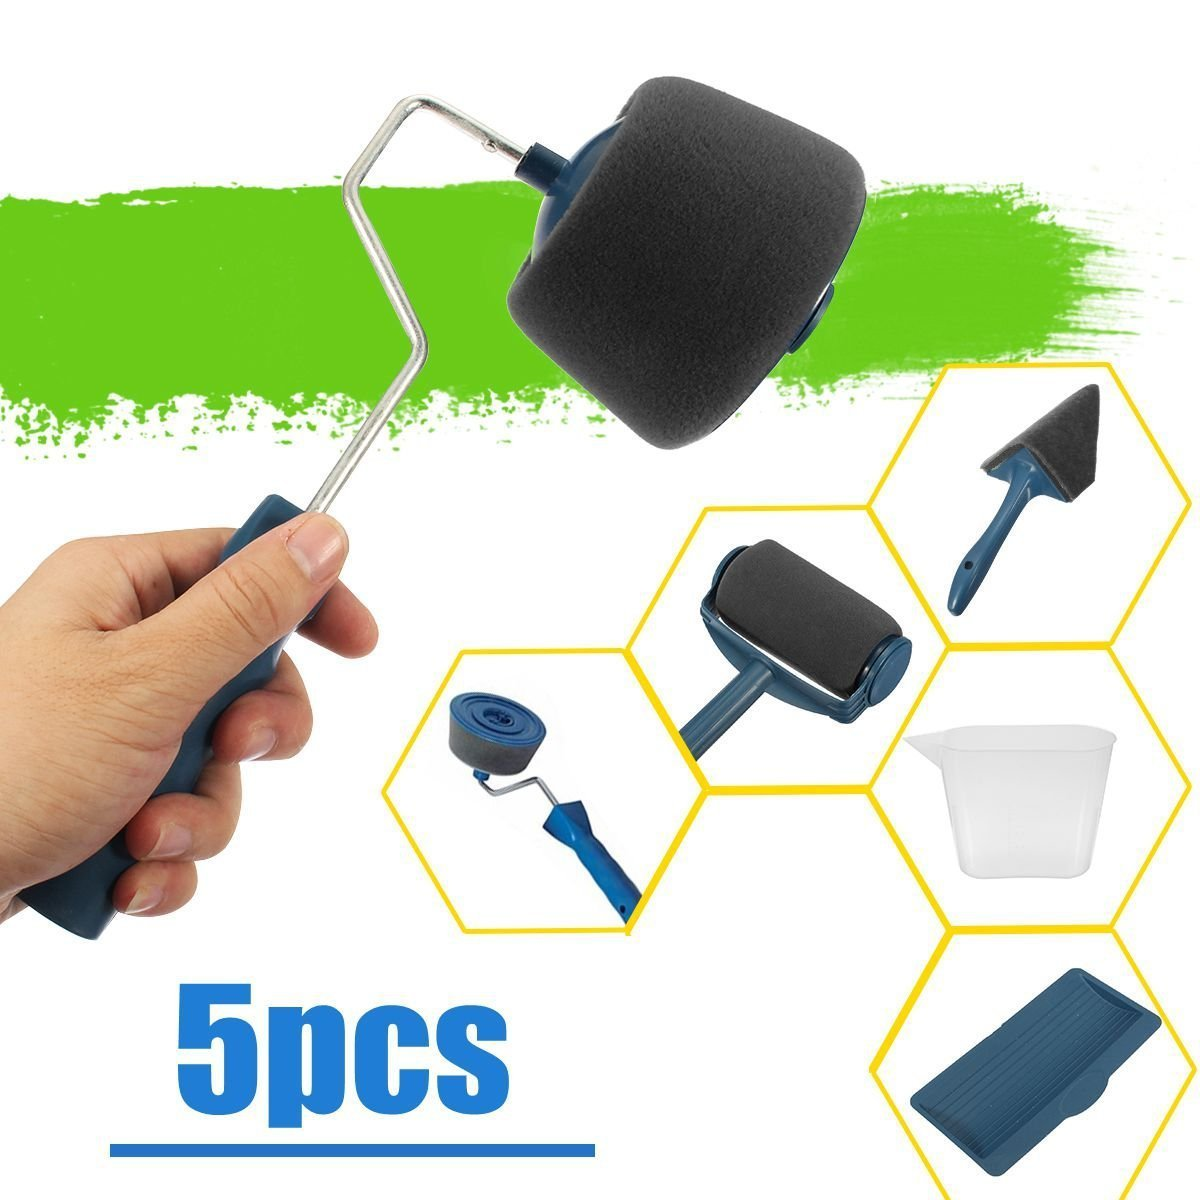 【Last Day Promotion& 50% OFF】 Paint Roller Brush Painting Handle Tool! - 5 PCS